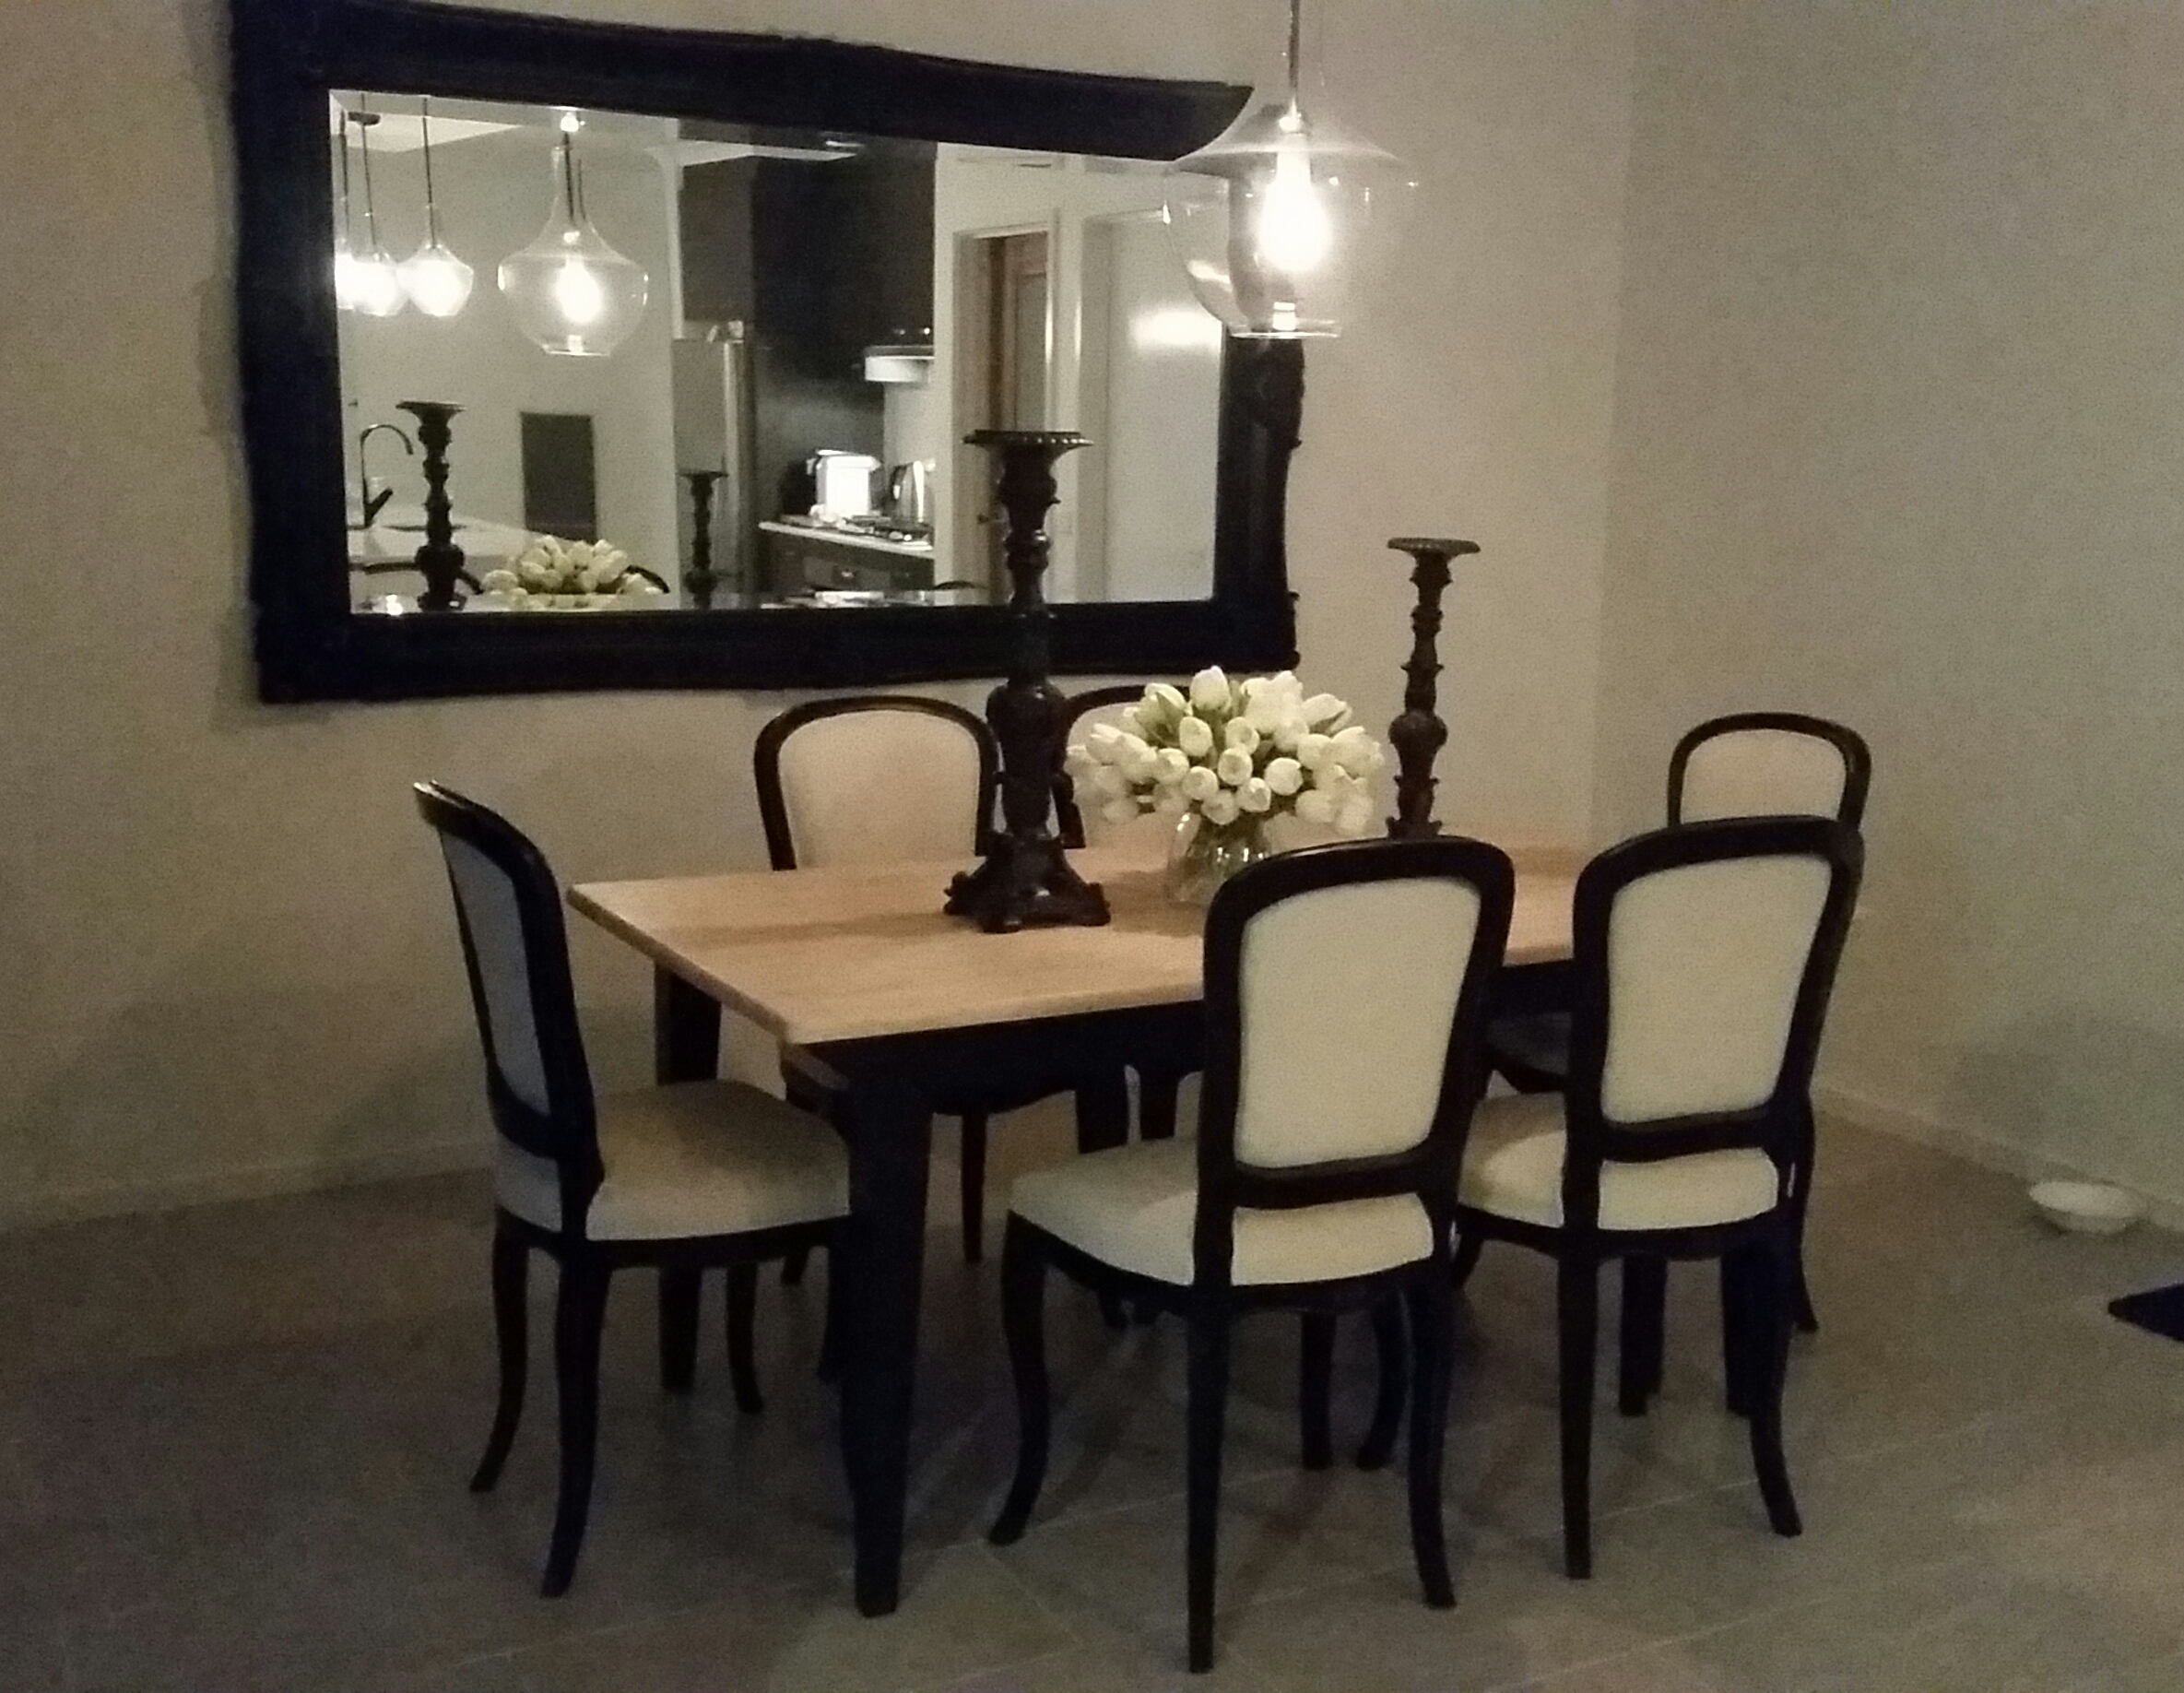 Fontaine Pendant featured over formal dining table